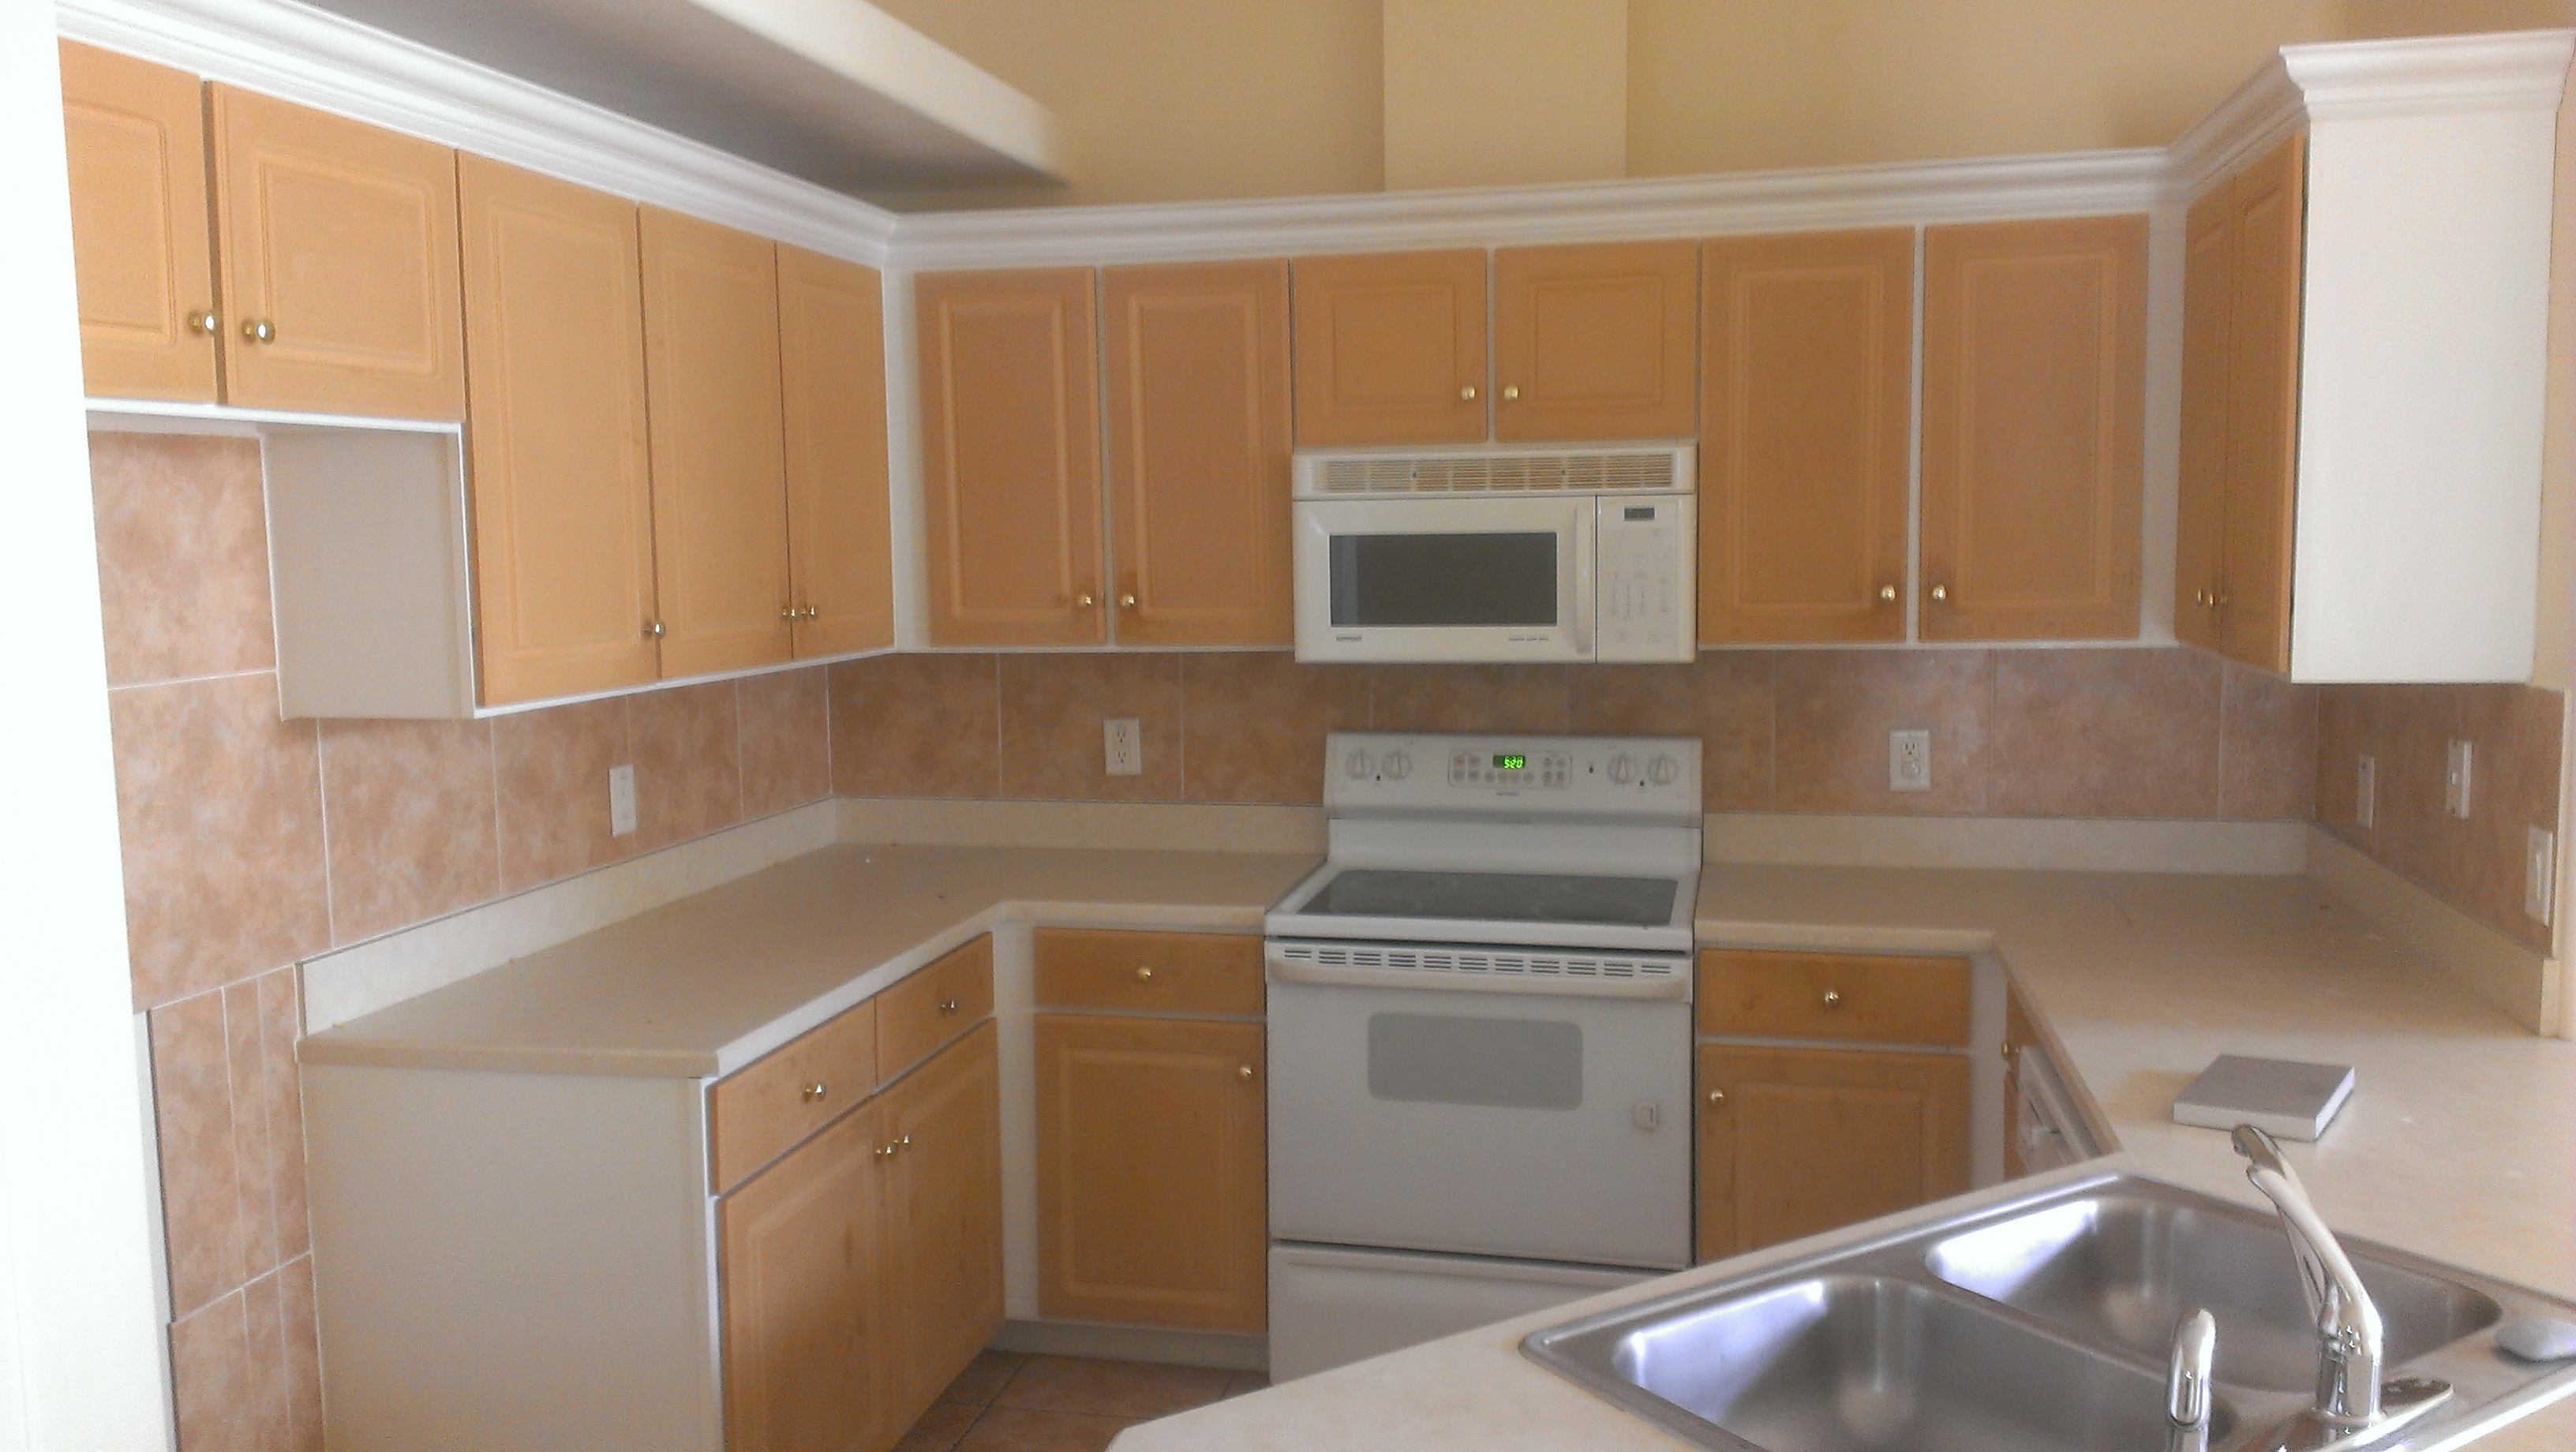 daytona beach cabinet refinishing beach kitchen cabinets Cabinet Refinishing Professionals